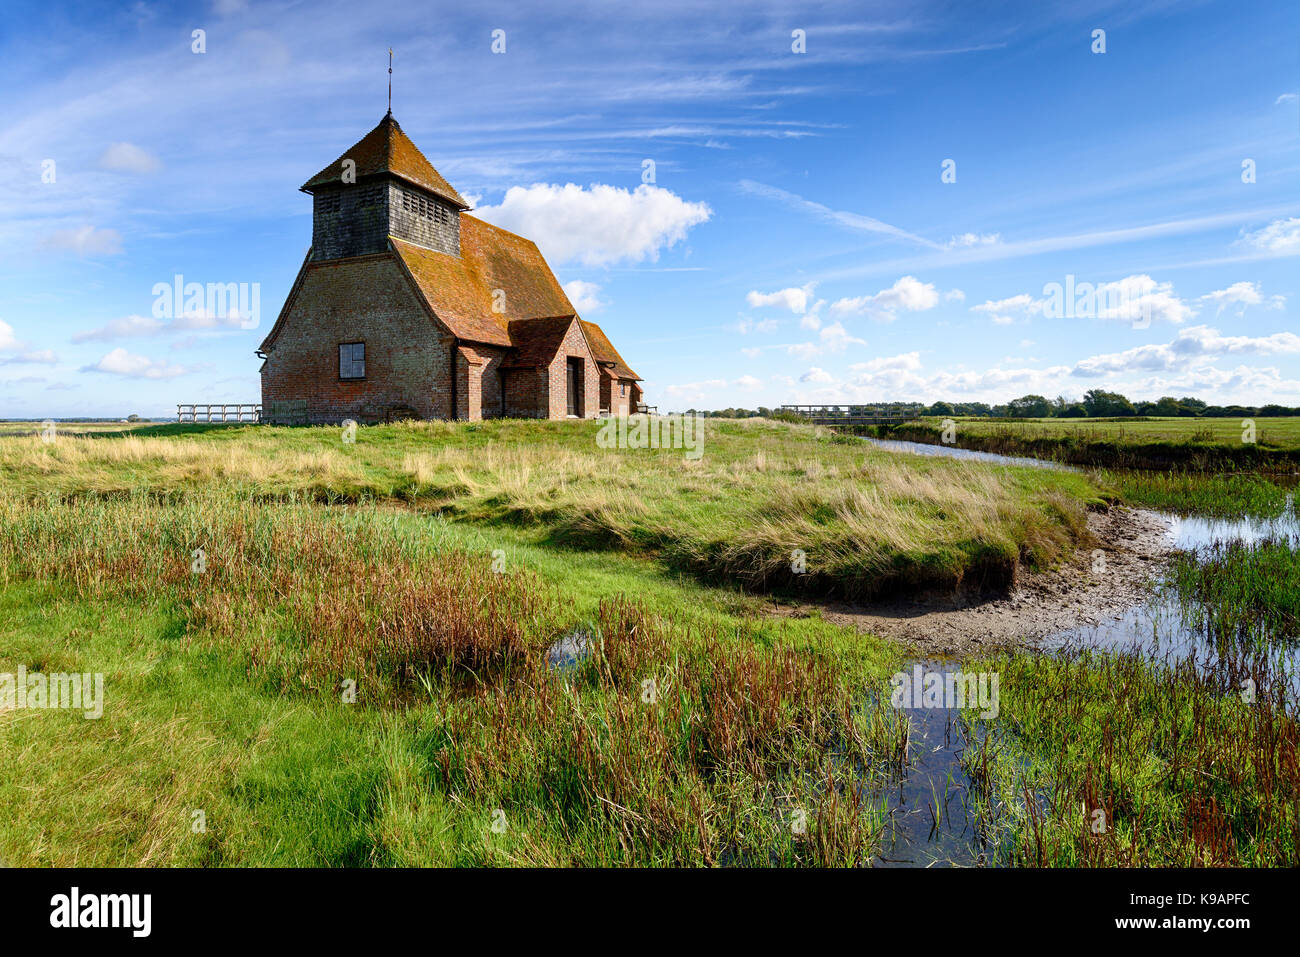 St Thomas a Becket Church at Fairfield on Romney Marsh in the Kent countrside - Stock Image